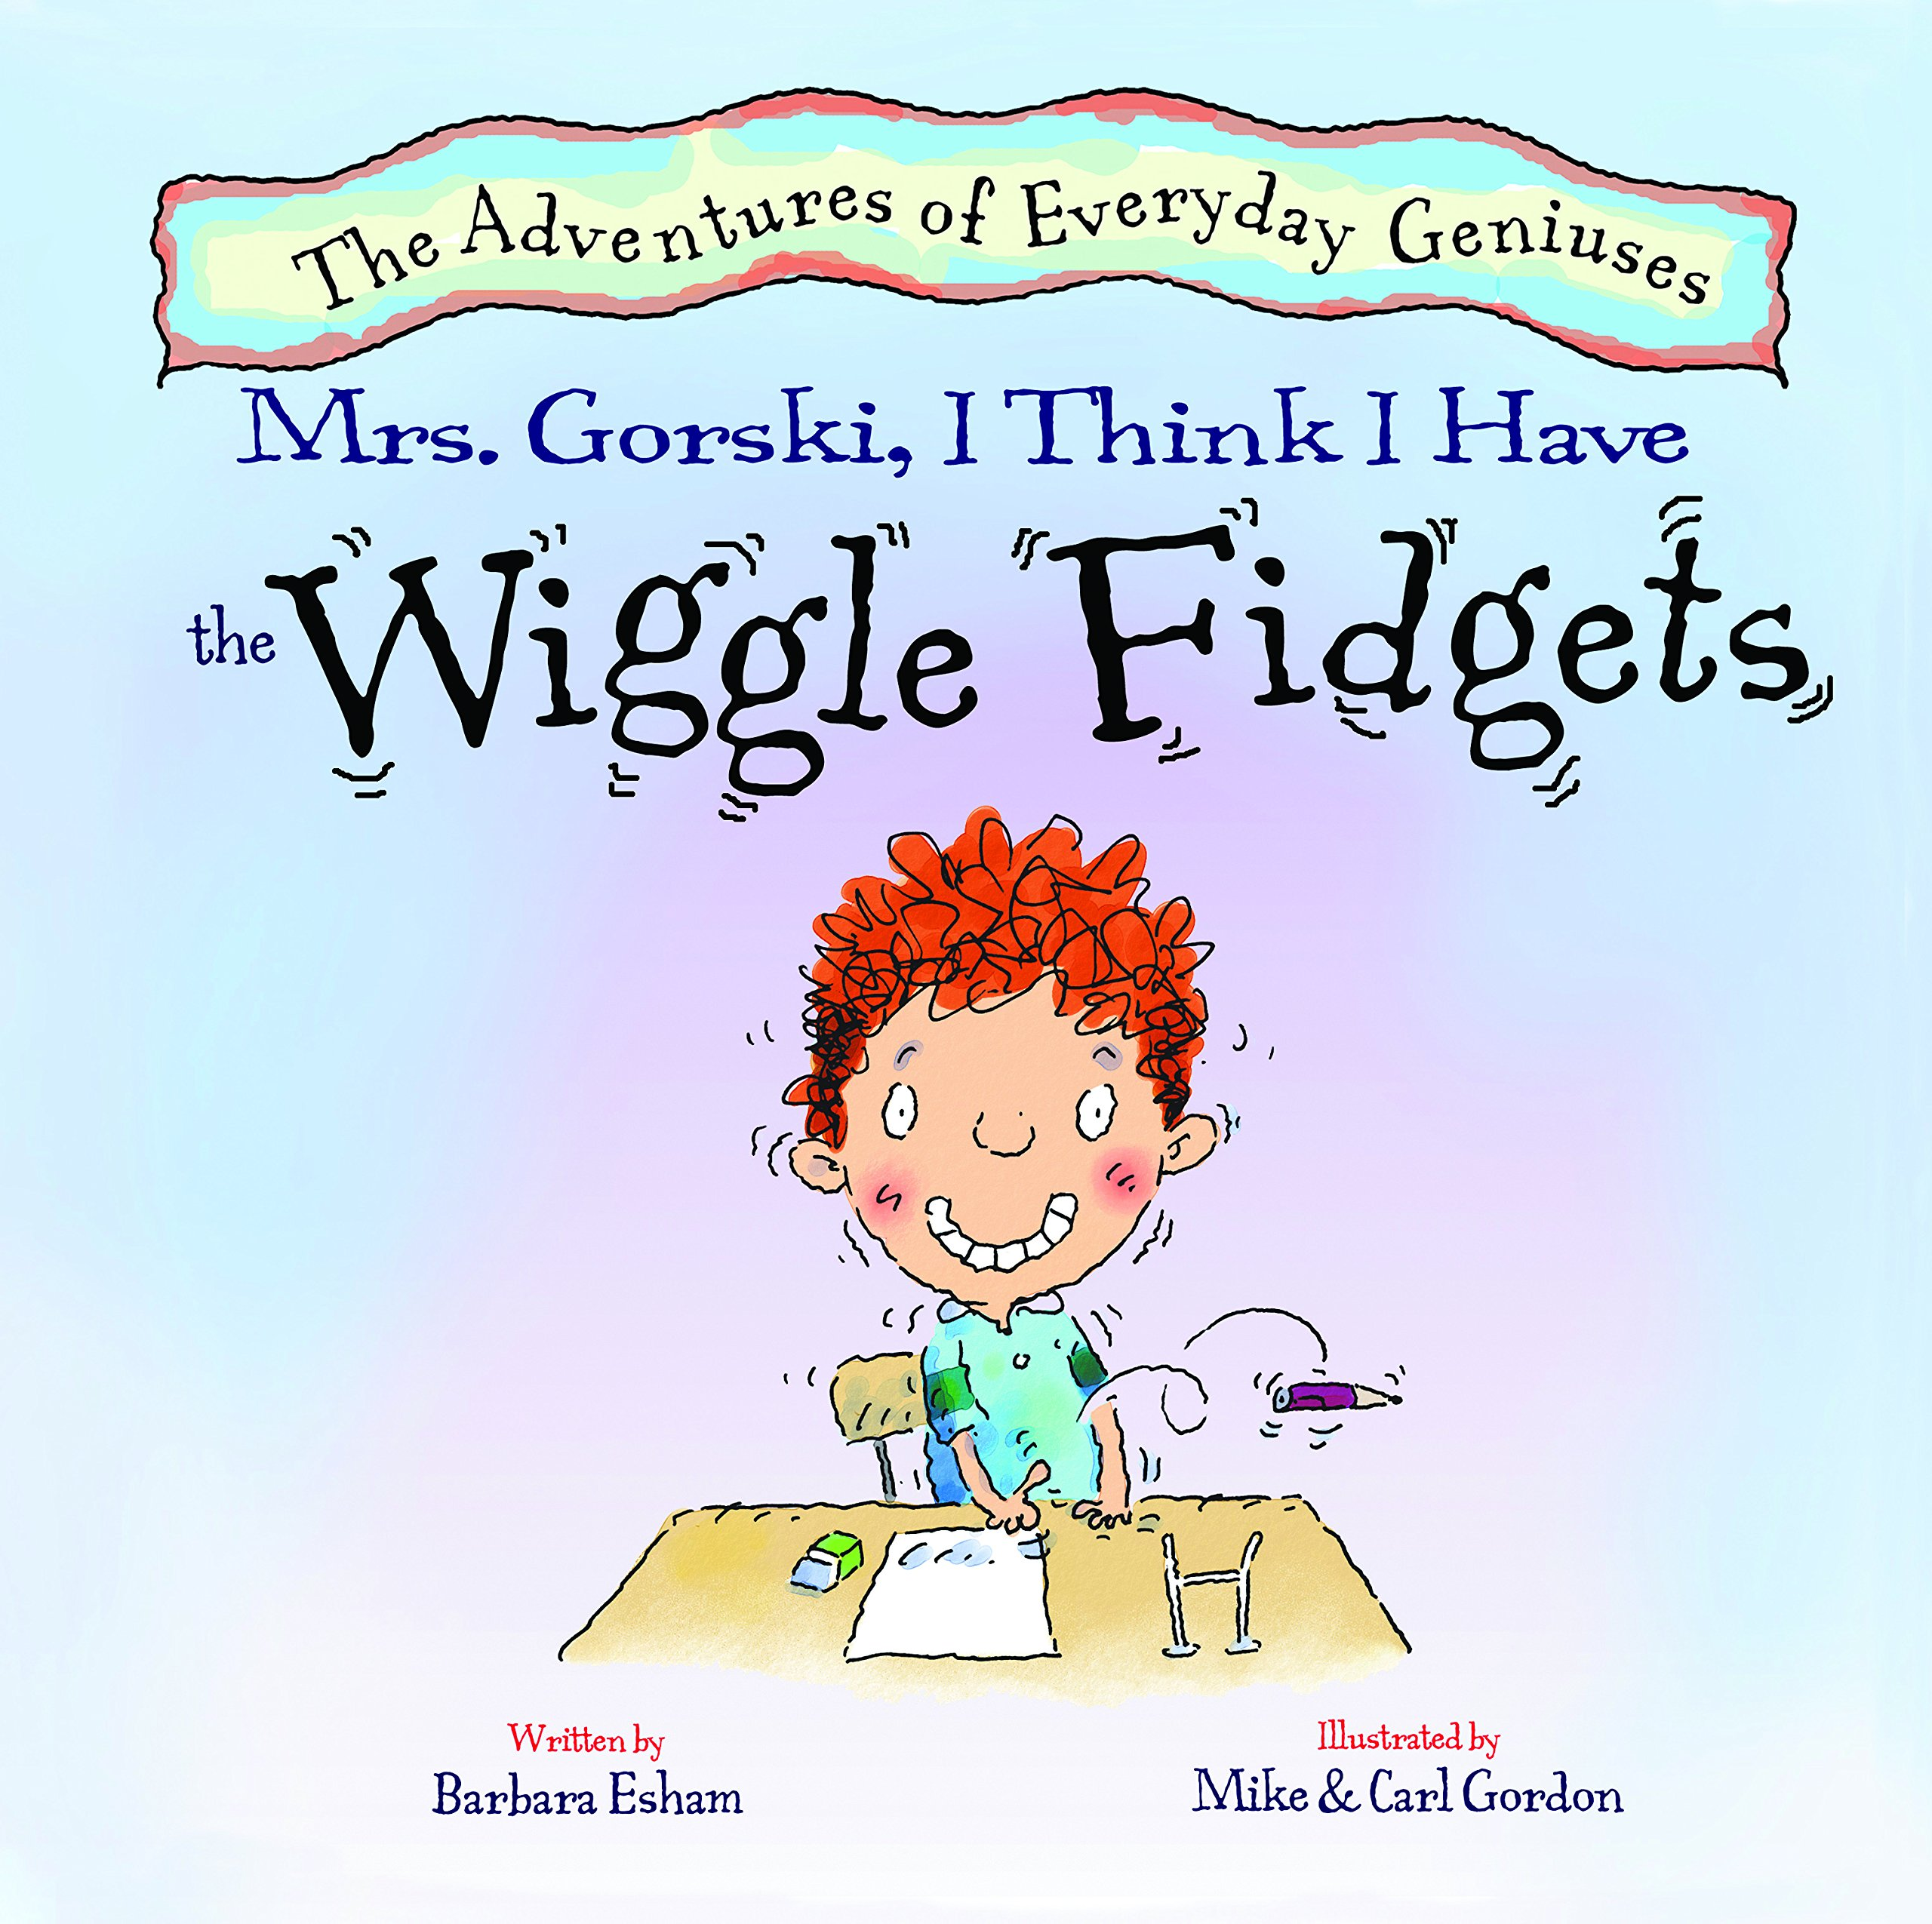 Mrs. Gorski, I Think I Have the Wiggle Fidgets (A Story About Attention. Distraction, and Creativity) New Edition (Adventures of Everyday Geniuses) ebook